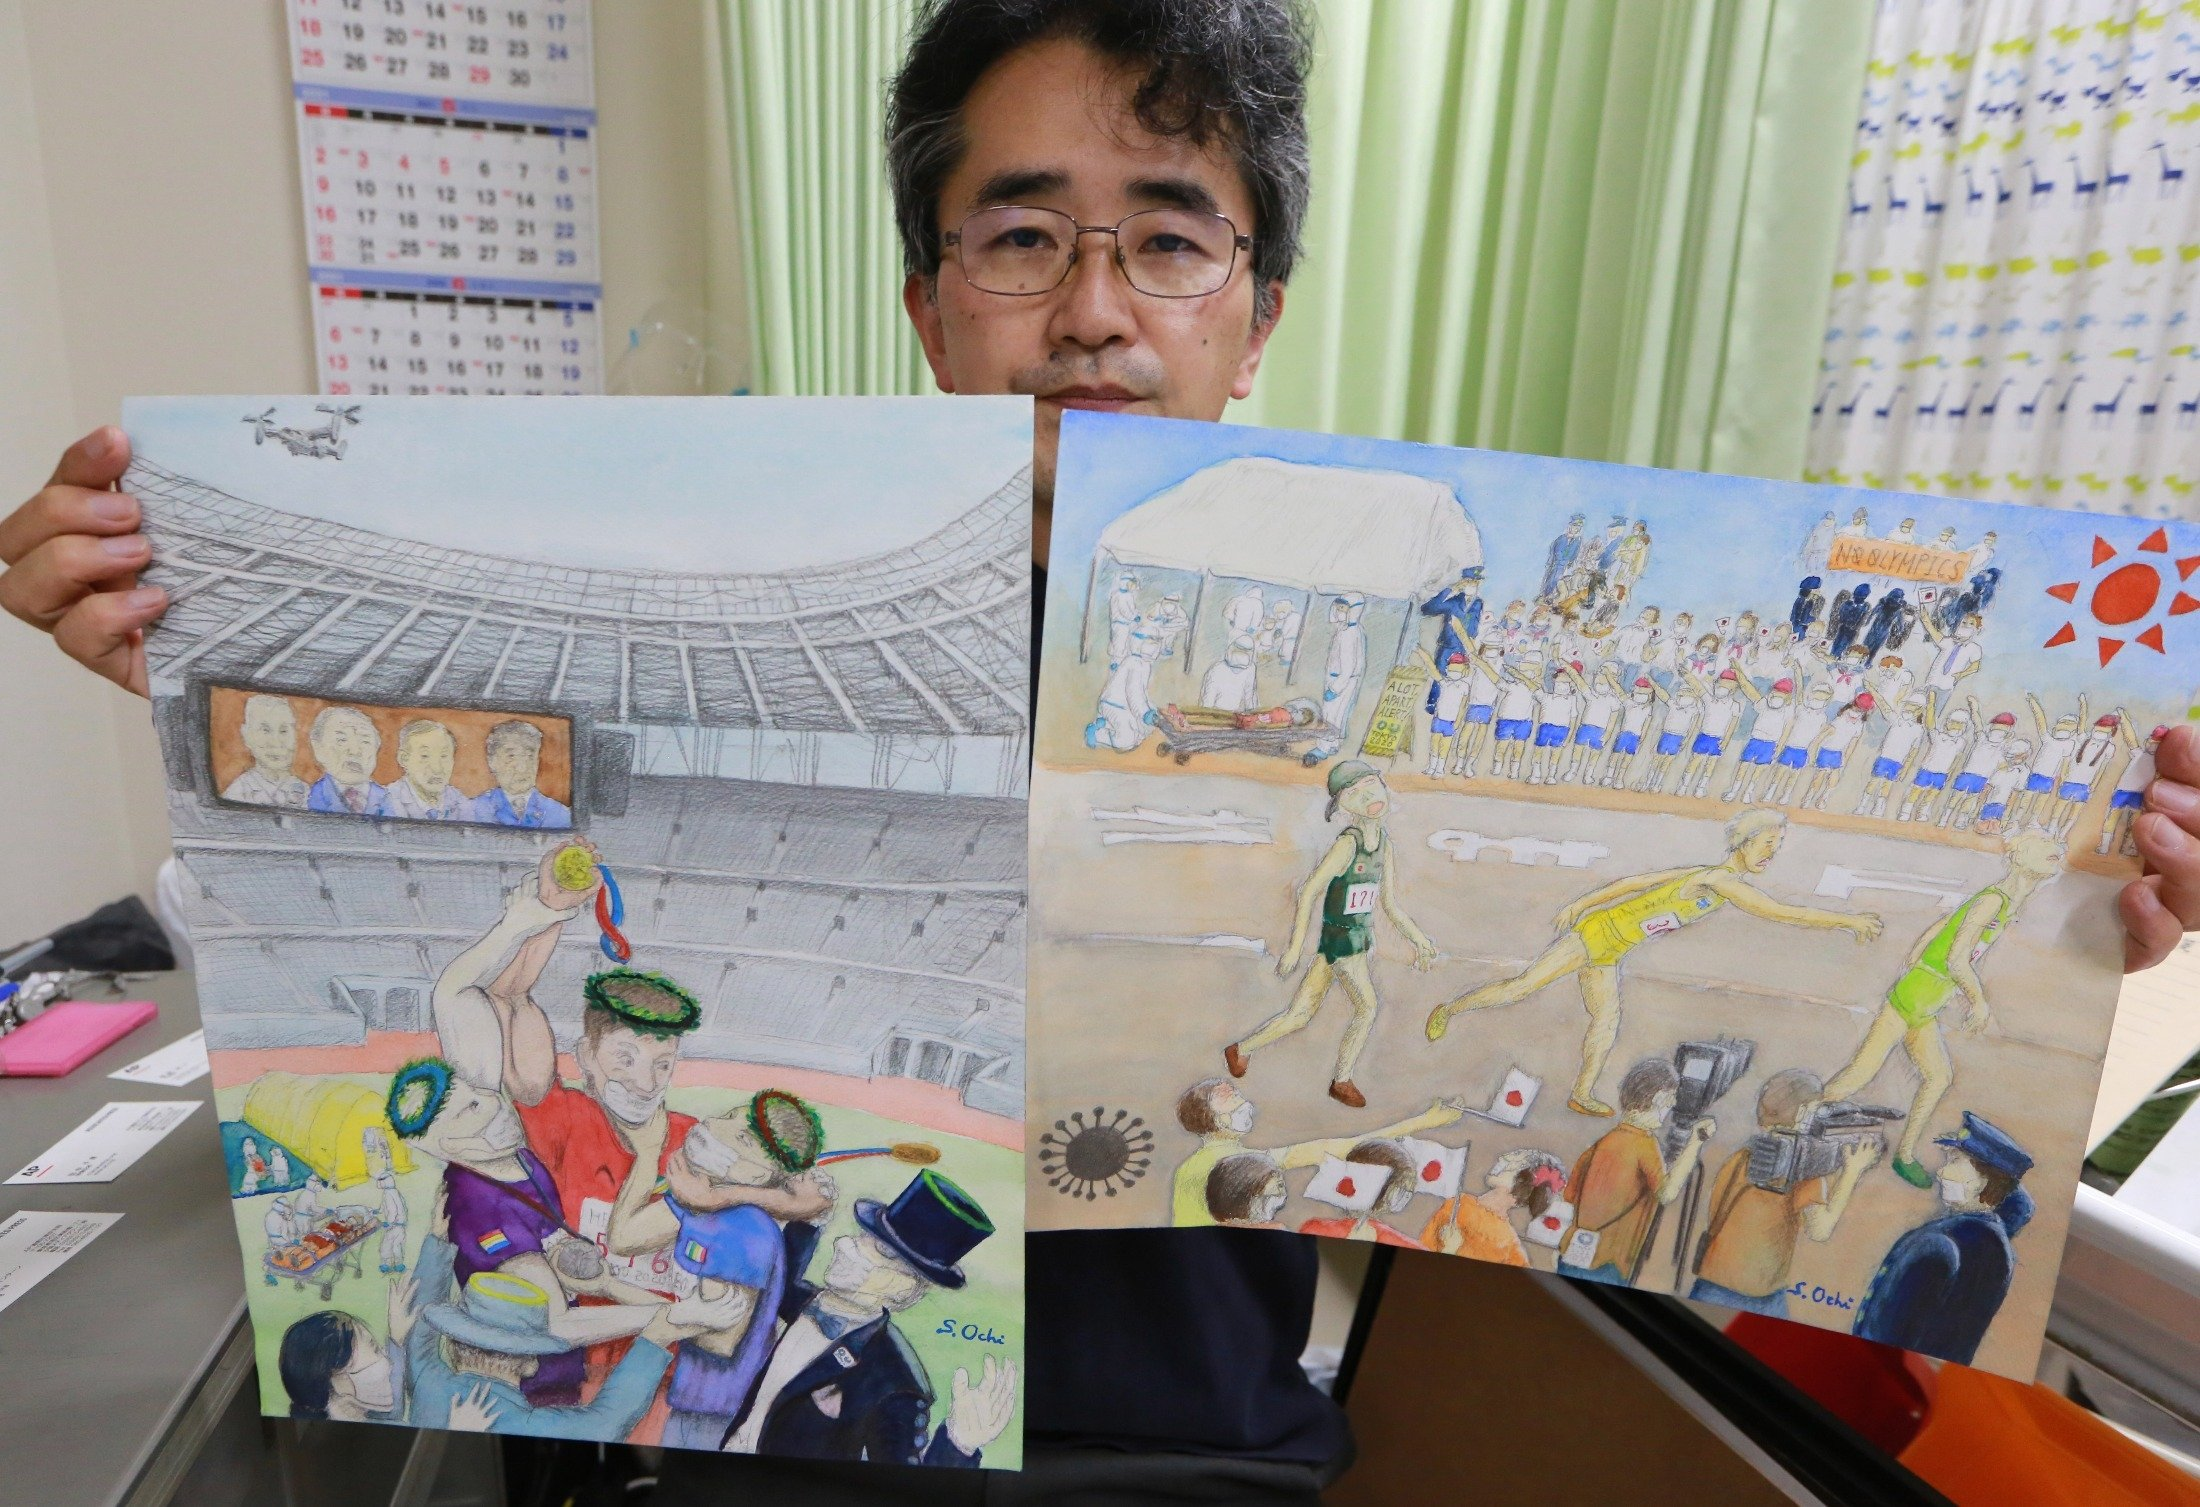 Doctor Sachihiro Ochi holds his work during an interview with The Associated Press in Yokohama near Tokyo, Japan, June 15, 2021. (AP Photo)